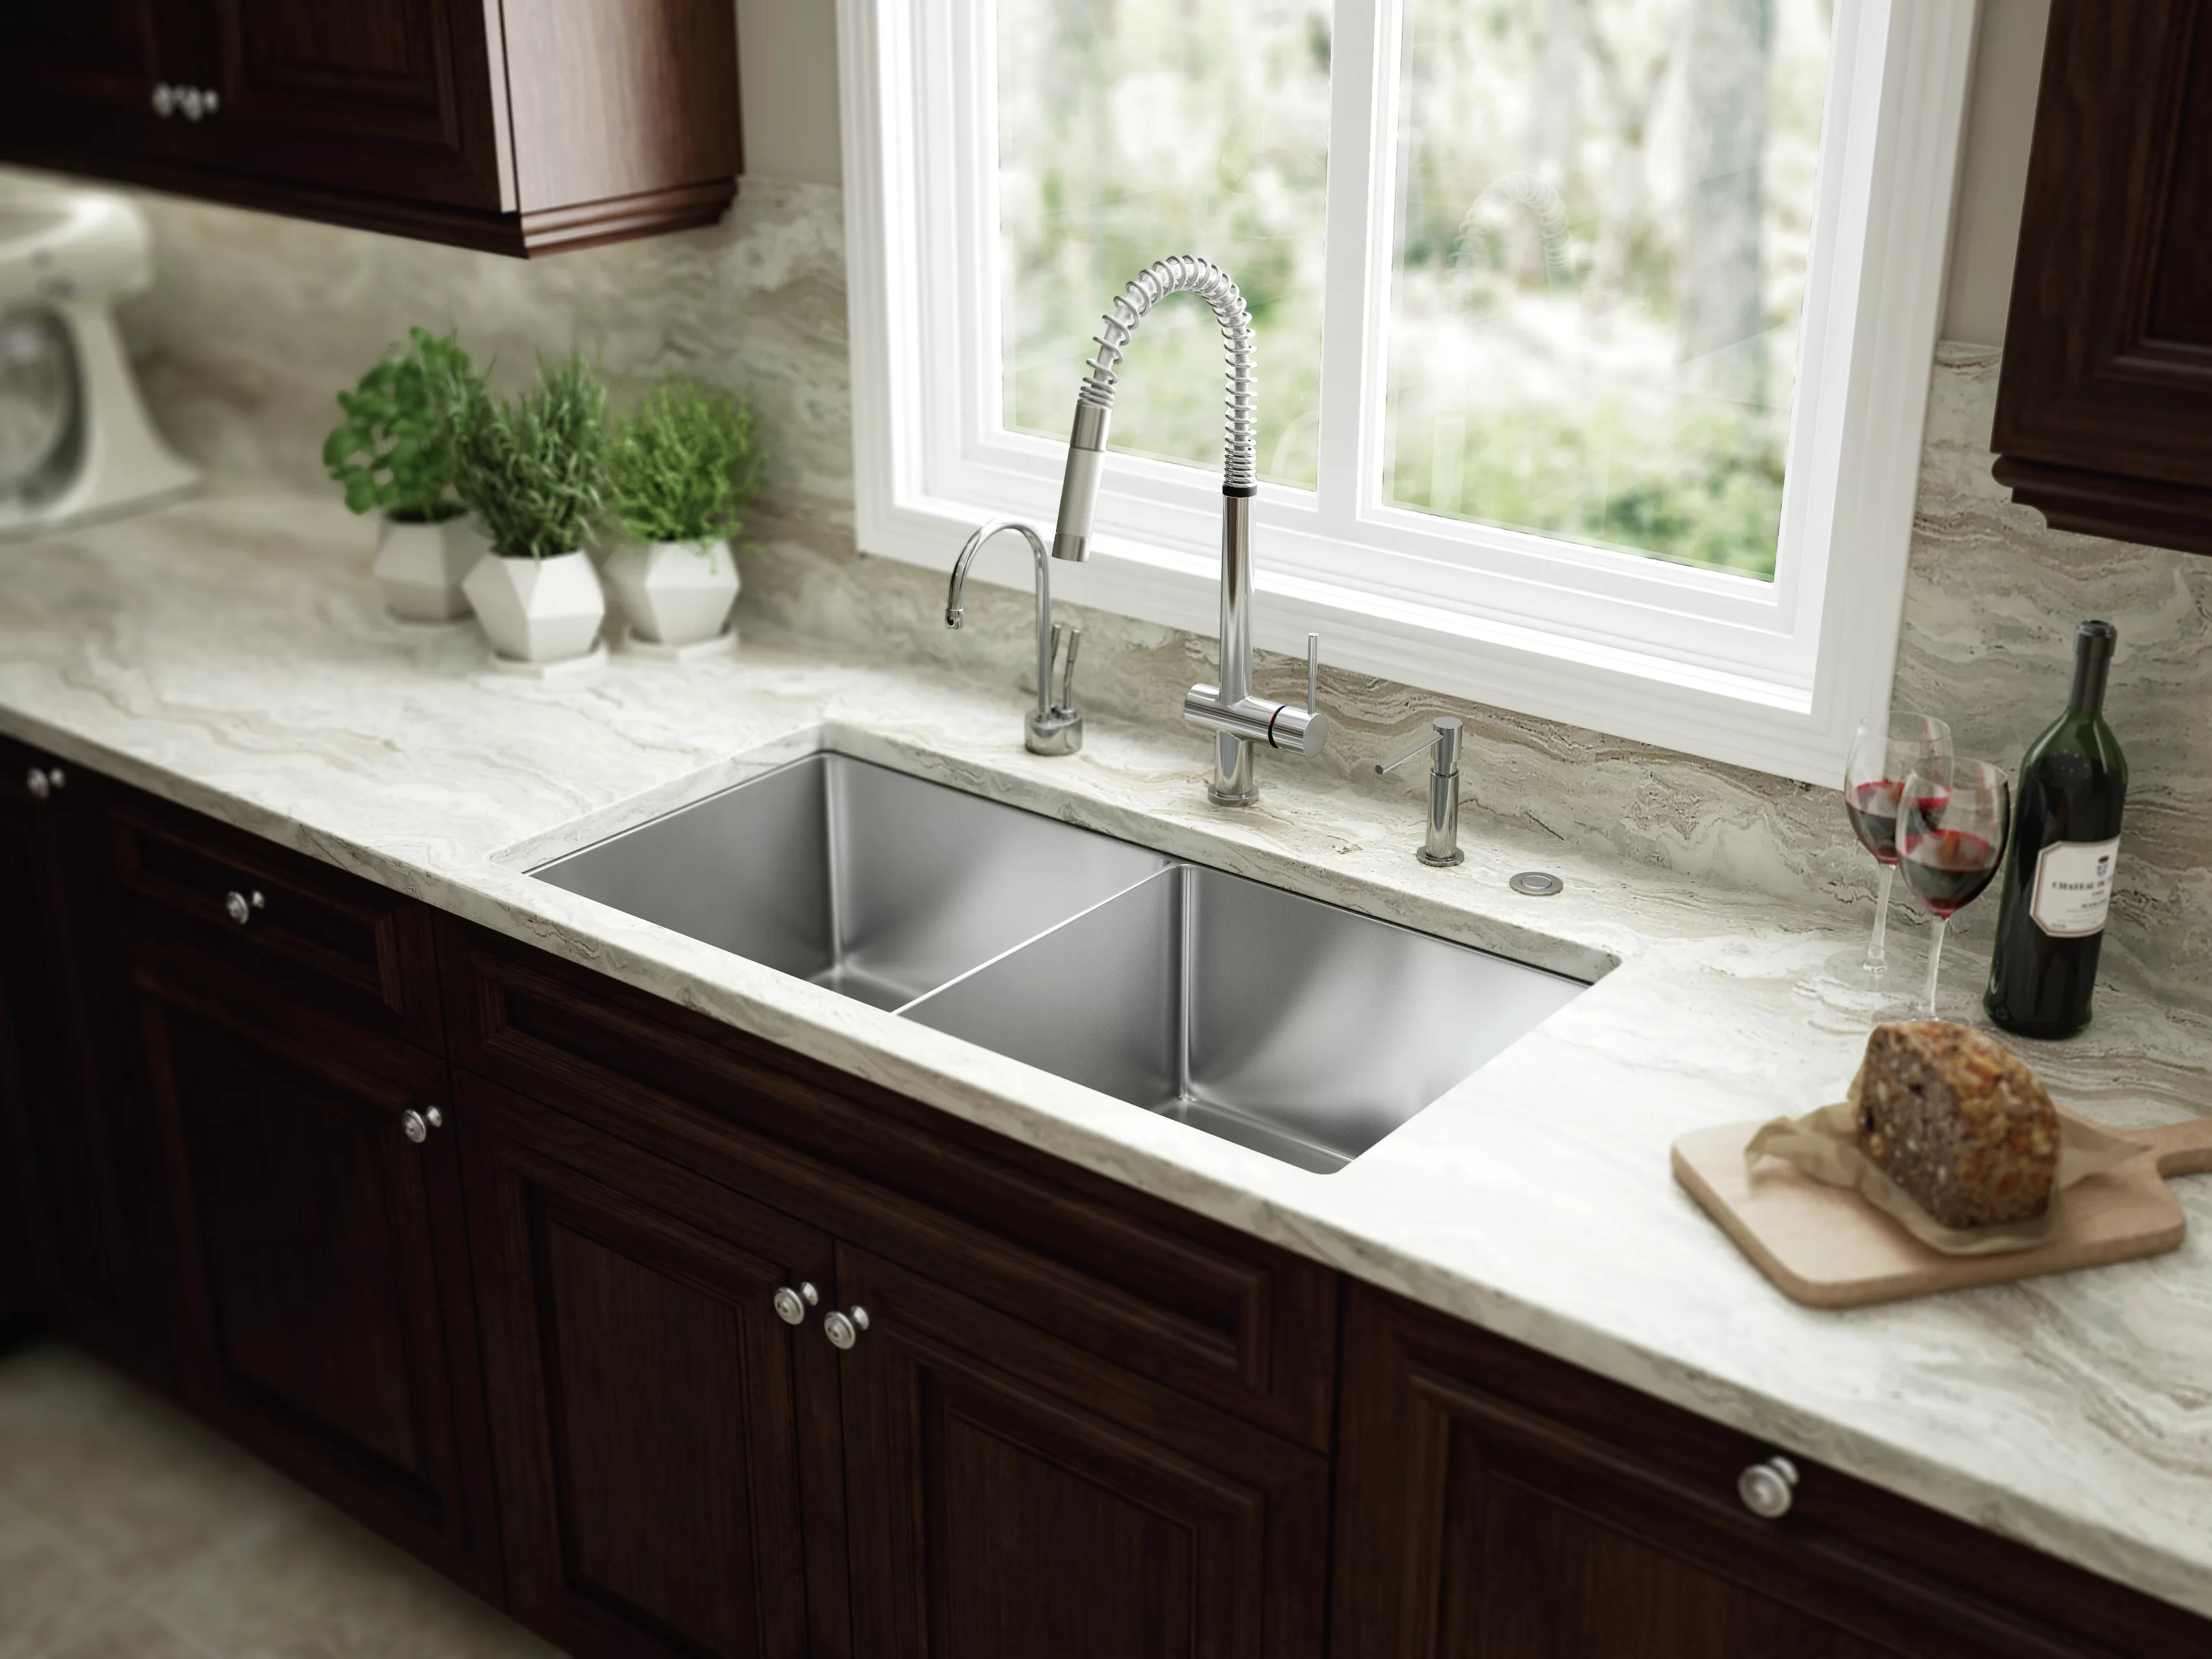 Kitchen Sink For 18 Cabinet Professional 35